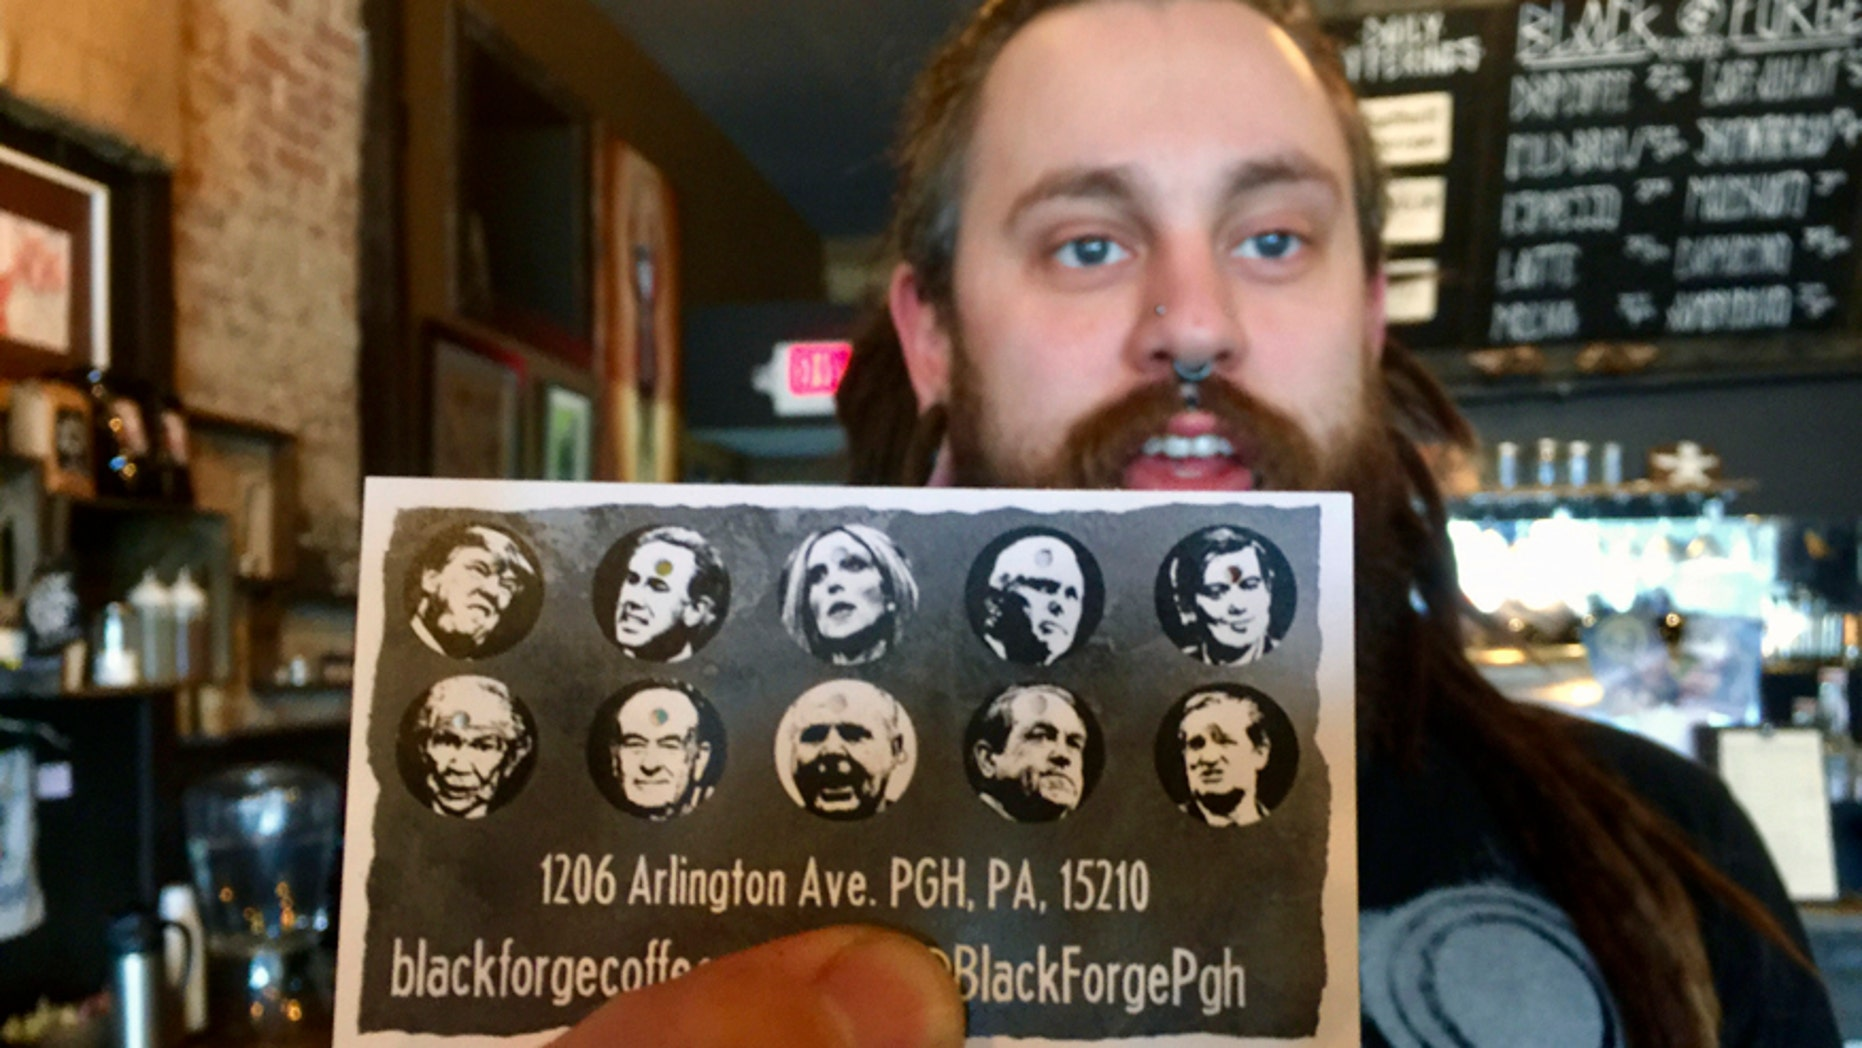 In this Thursday, March 30, 2017 photo, Nick Miller, co-owner of the Black Forge Coffee House in Pittsburgh's Allentown neighborhood, holds a punch card featuring President Donald Trump and nine other conservative politicians and media icons. The card has caused a mini-furor with the shop receiving a deluge of phone calls and online comments, both of disparagement and support from around the country.  Miller says the satiric cards are meant to express frustration with the system and nothing more. (Dan Gigler /Pittsburgh Post-Gazette via AP)